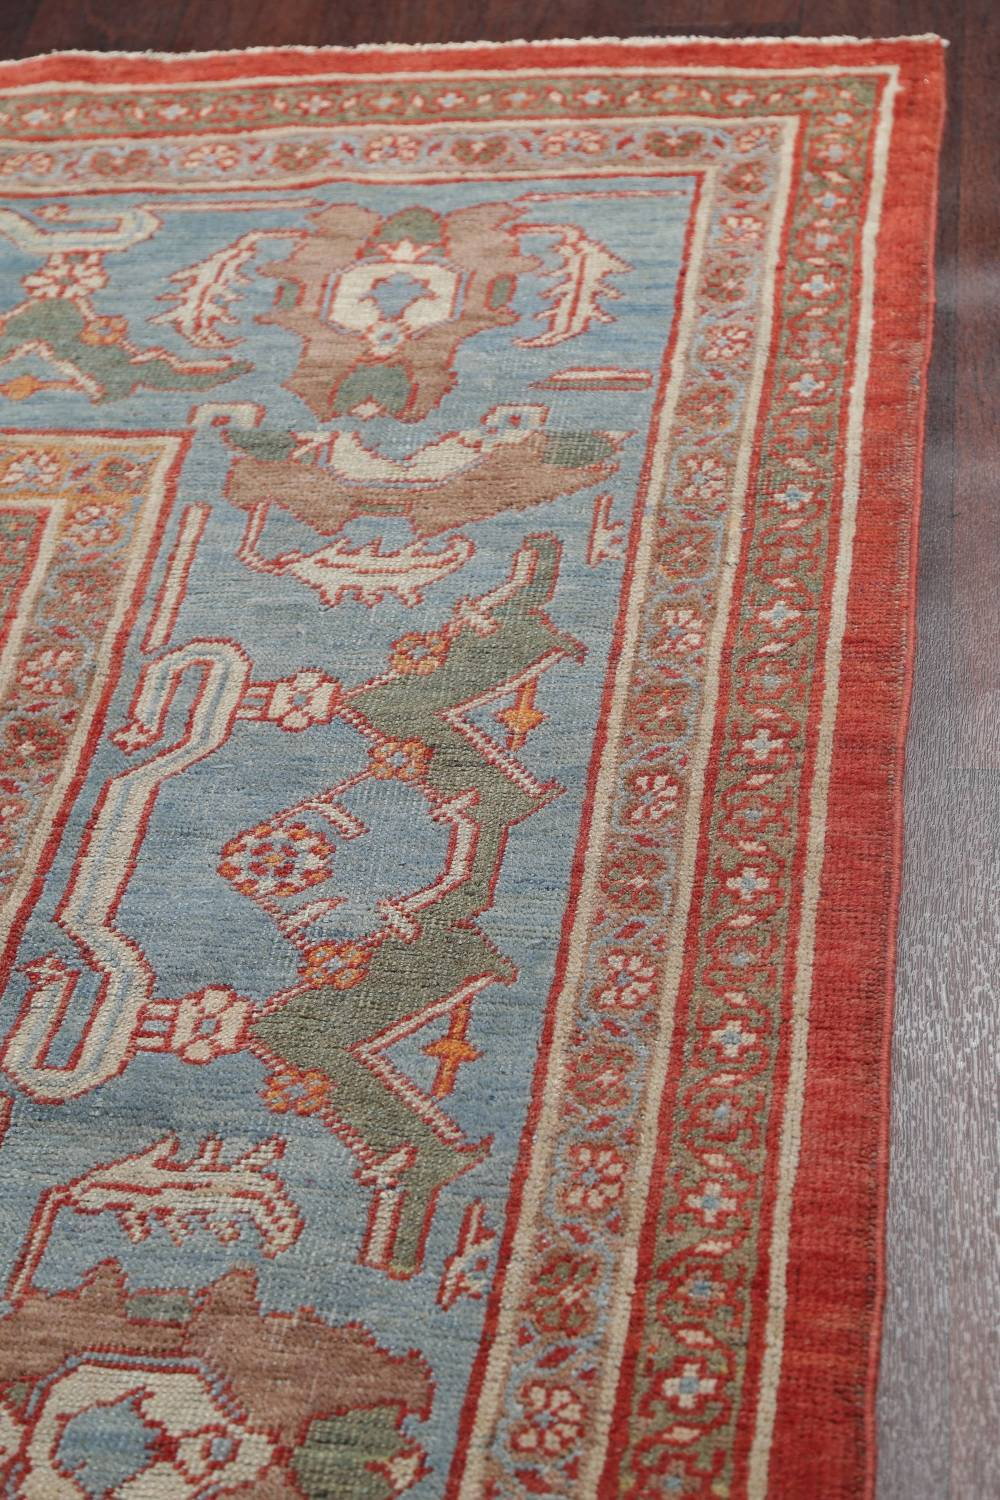 Palace Size Pre-1900 Antique Sultanabad Persian Rug 14x24 image 16